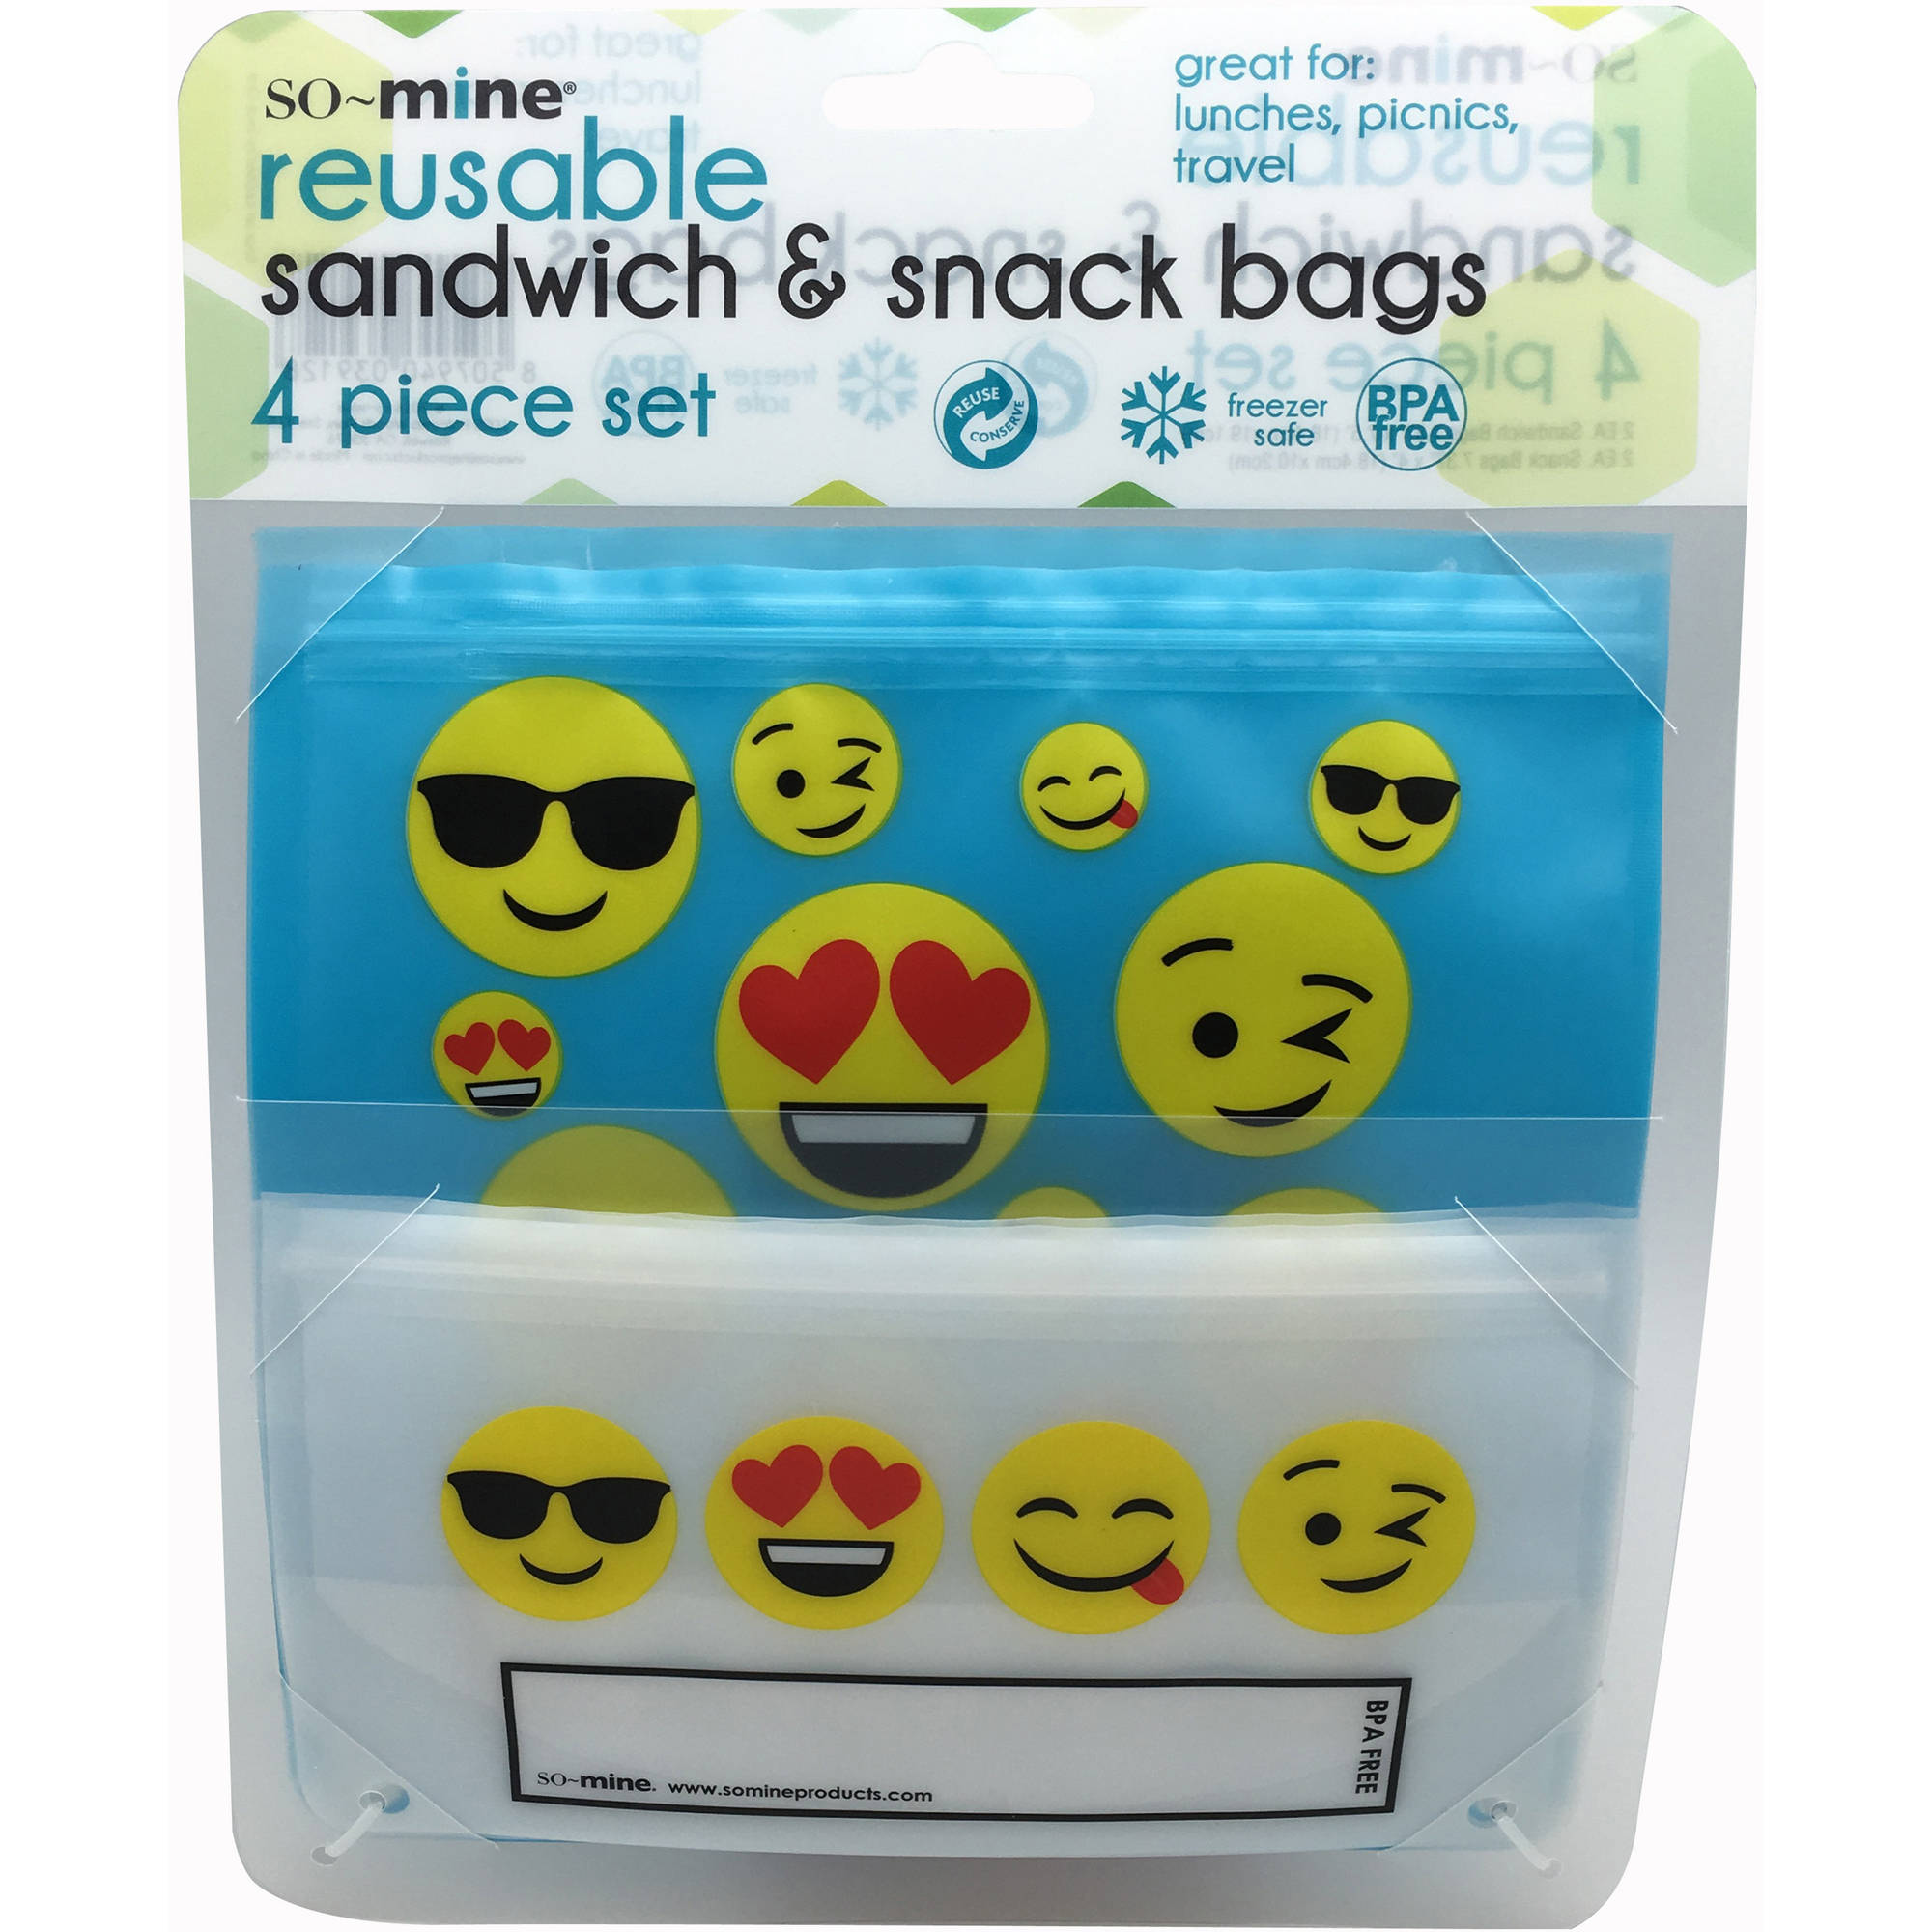 Reusable Sandwich/Snack Bags with Emoji Designs